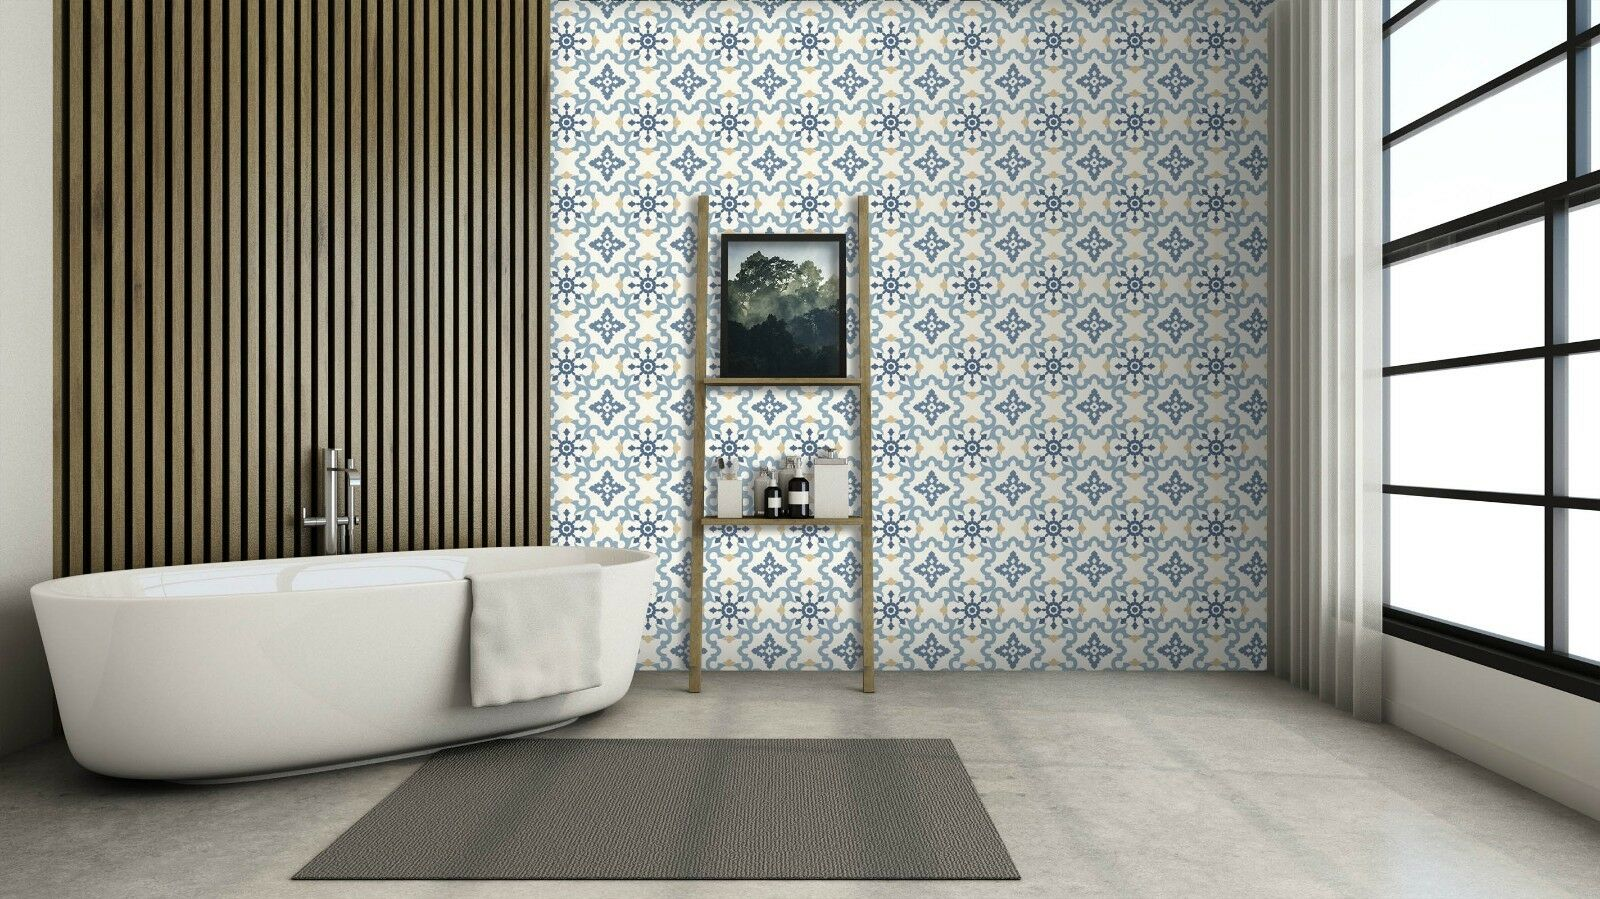 3D Blau Flower 81 Texture Tiles Marble Wall Paper Decal Wallpaper Mural AJ AU